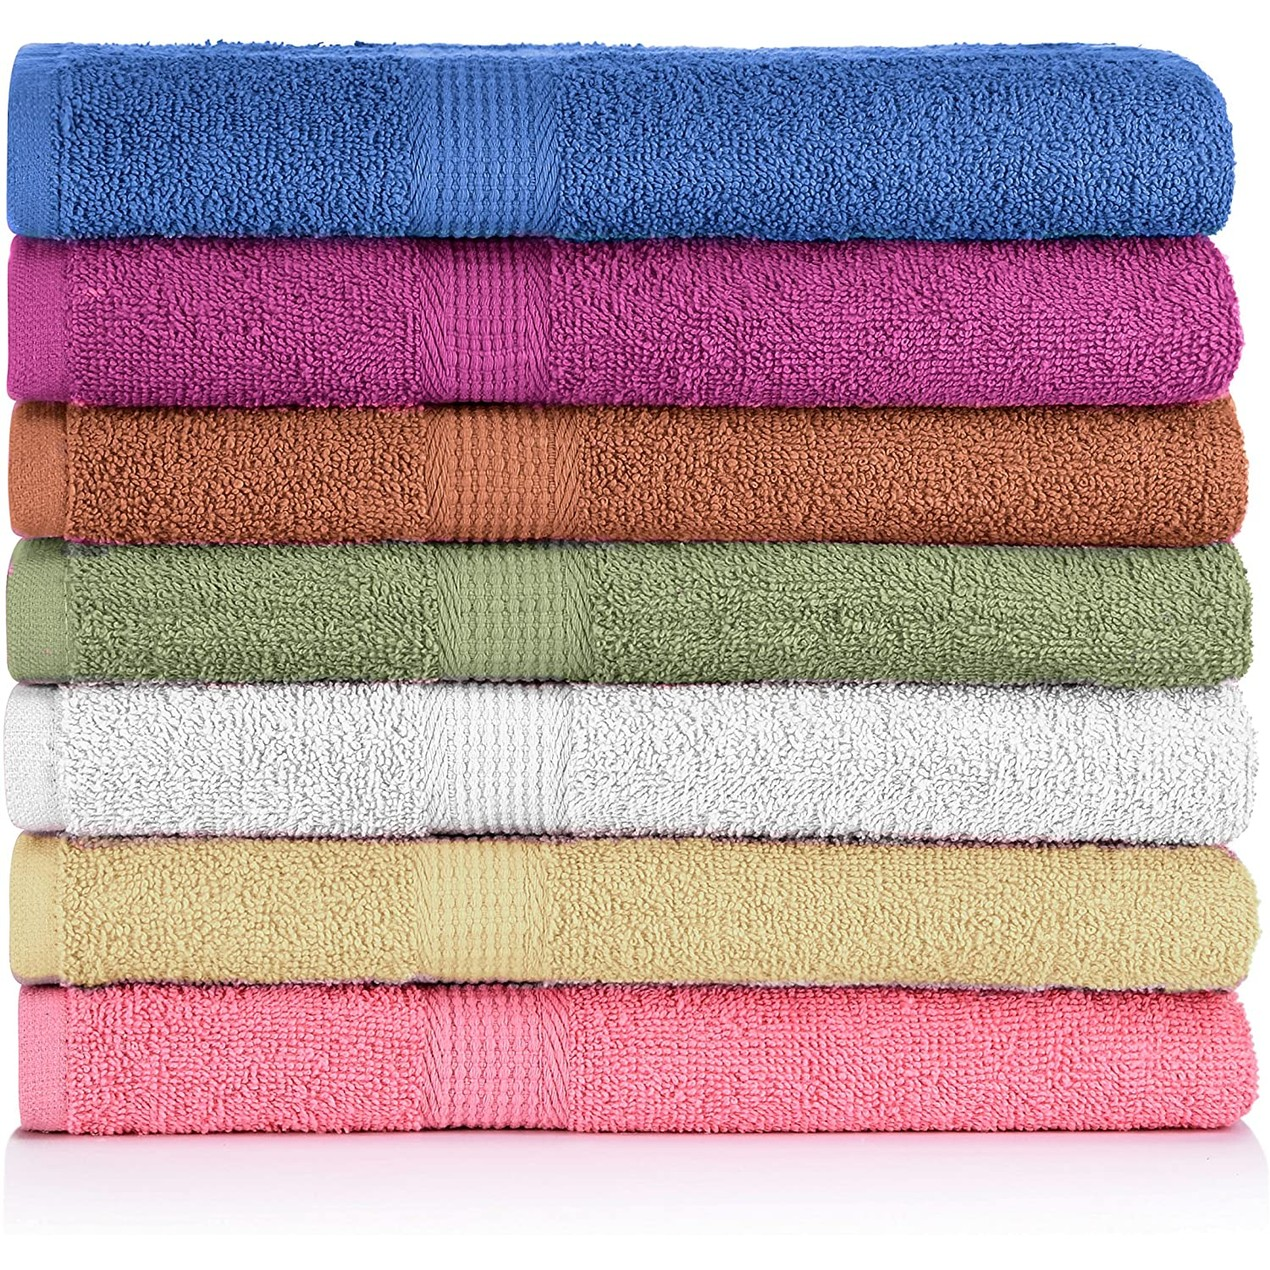 7-Pack CrystalTowels 27'' X 52'' 100% Cotton Extra- Absorbent Bath Towels